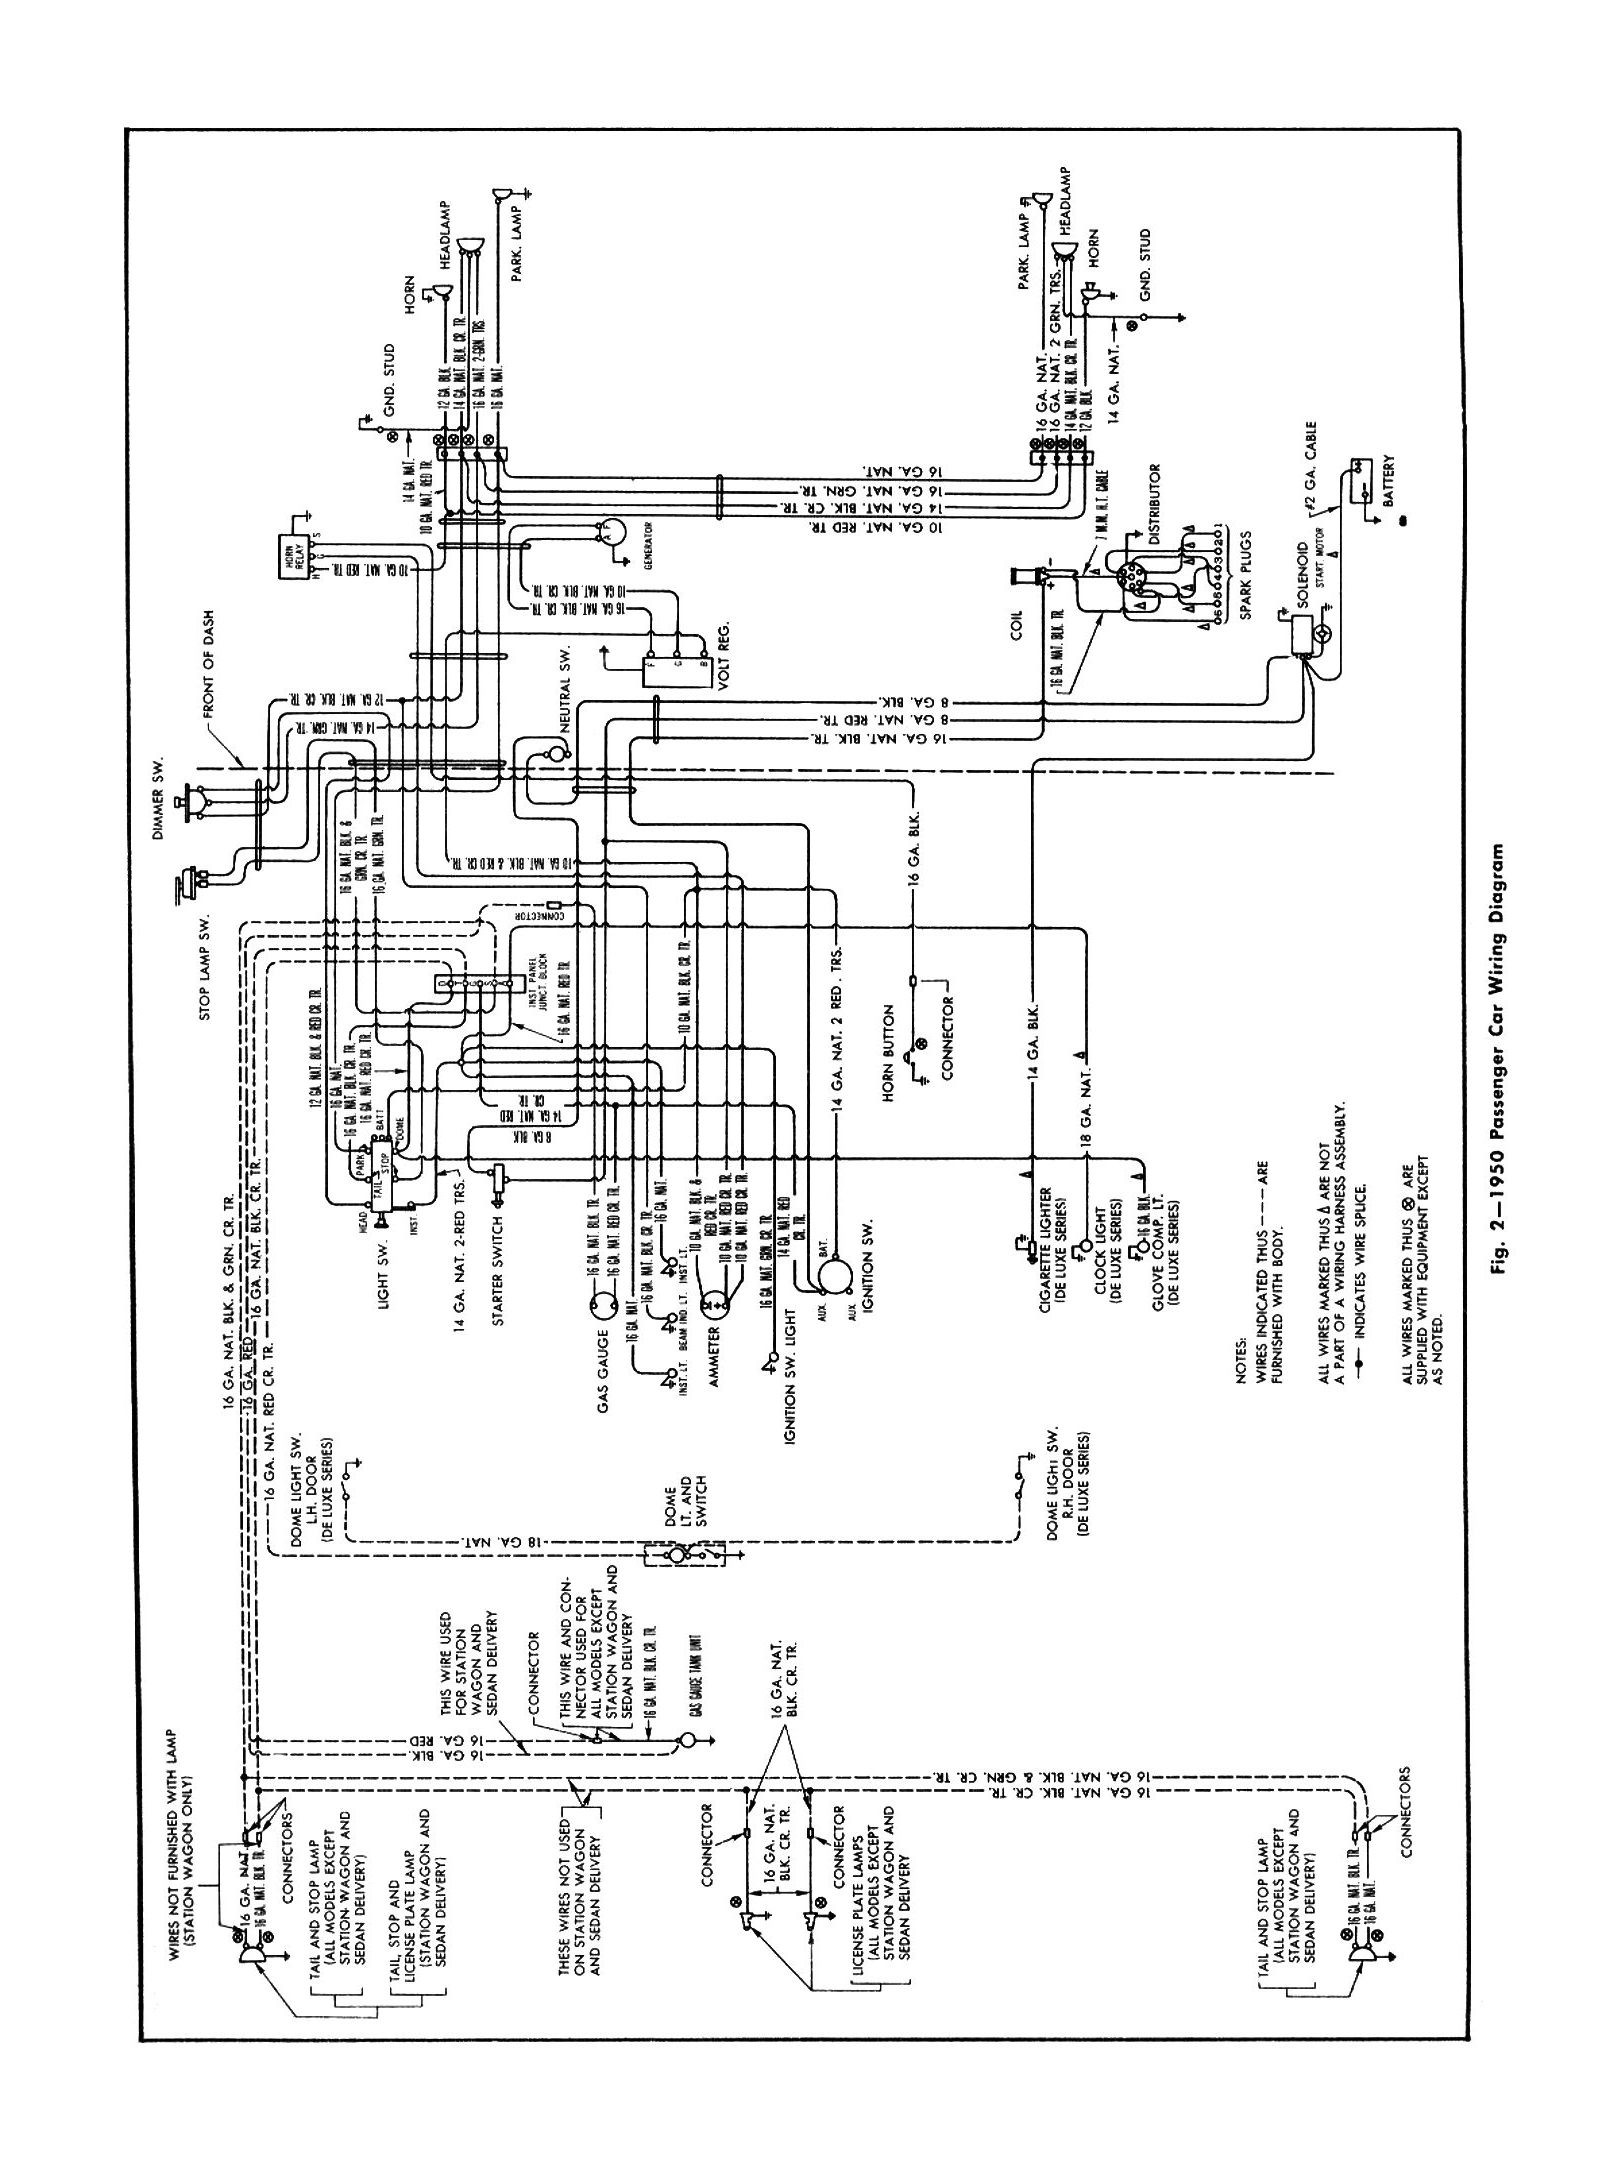 3100 wiring harness diagram getting started of wiring diagram 1953 ford jubilee tractor parts